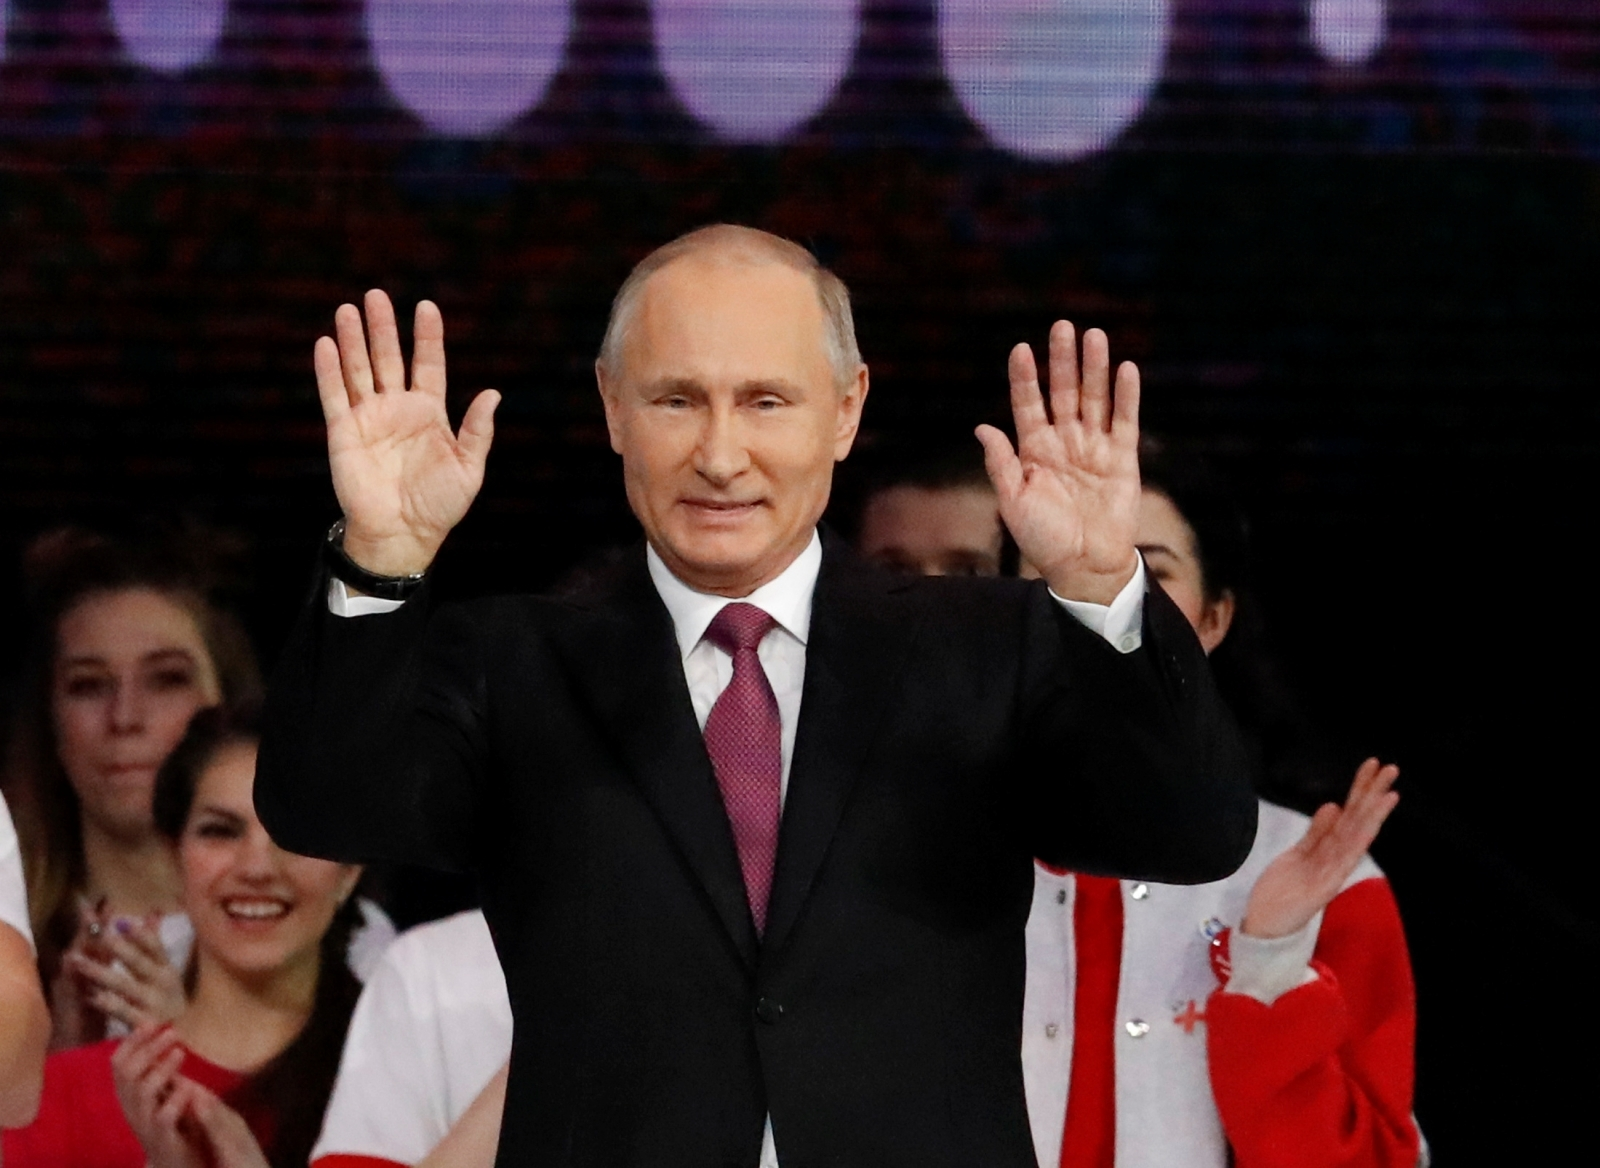 Putin announces he is running for president in Russian election